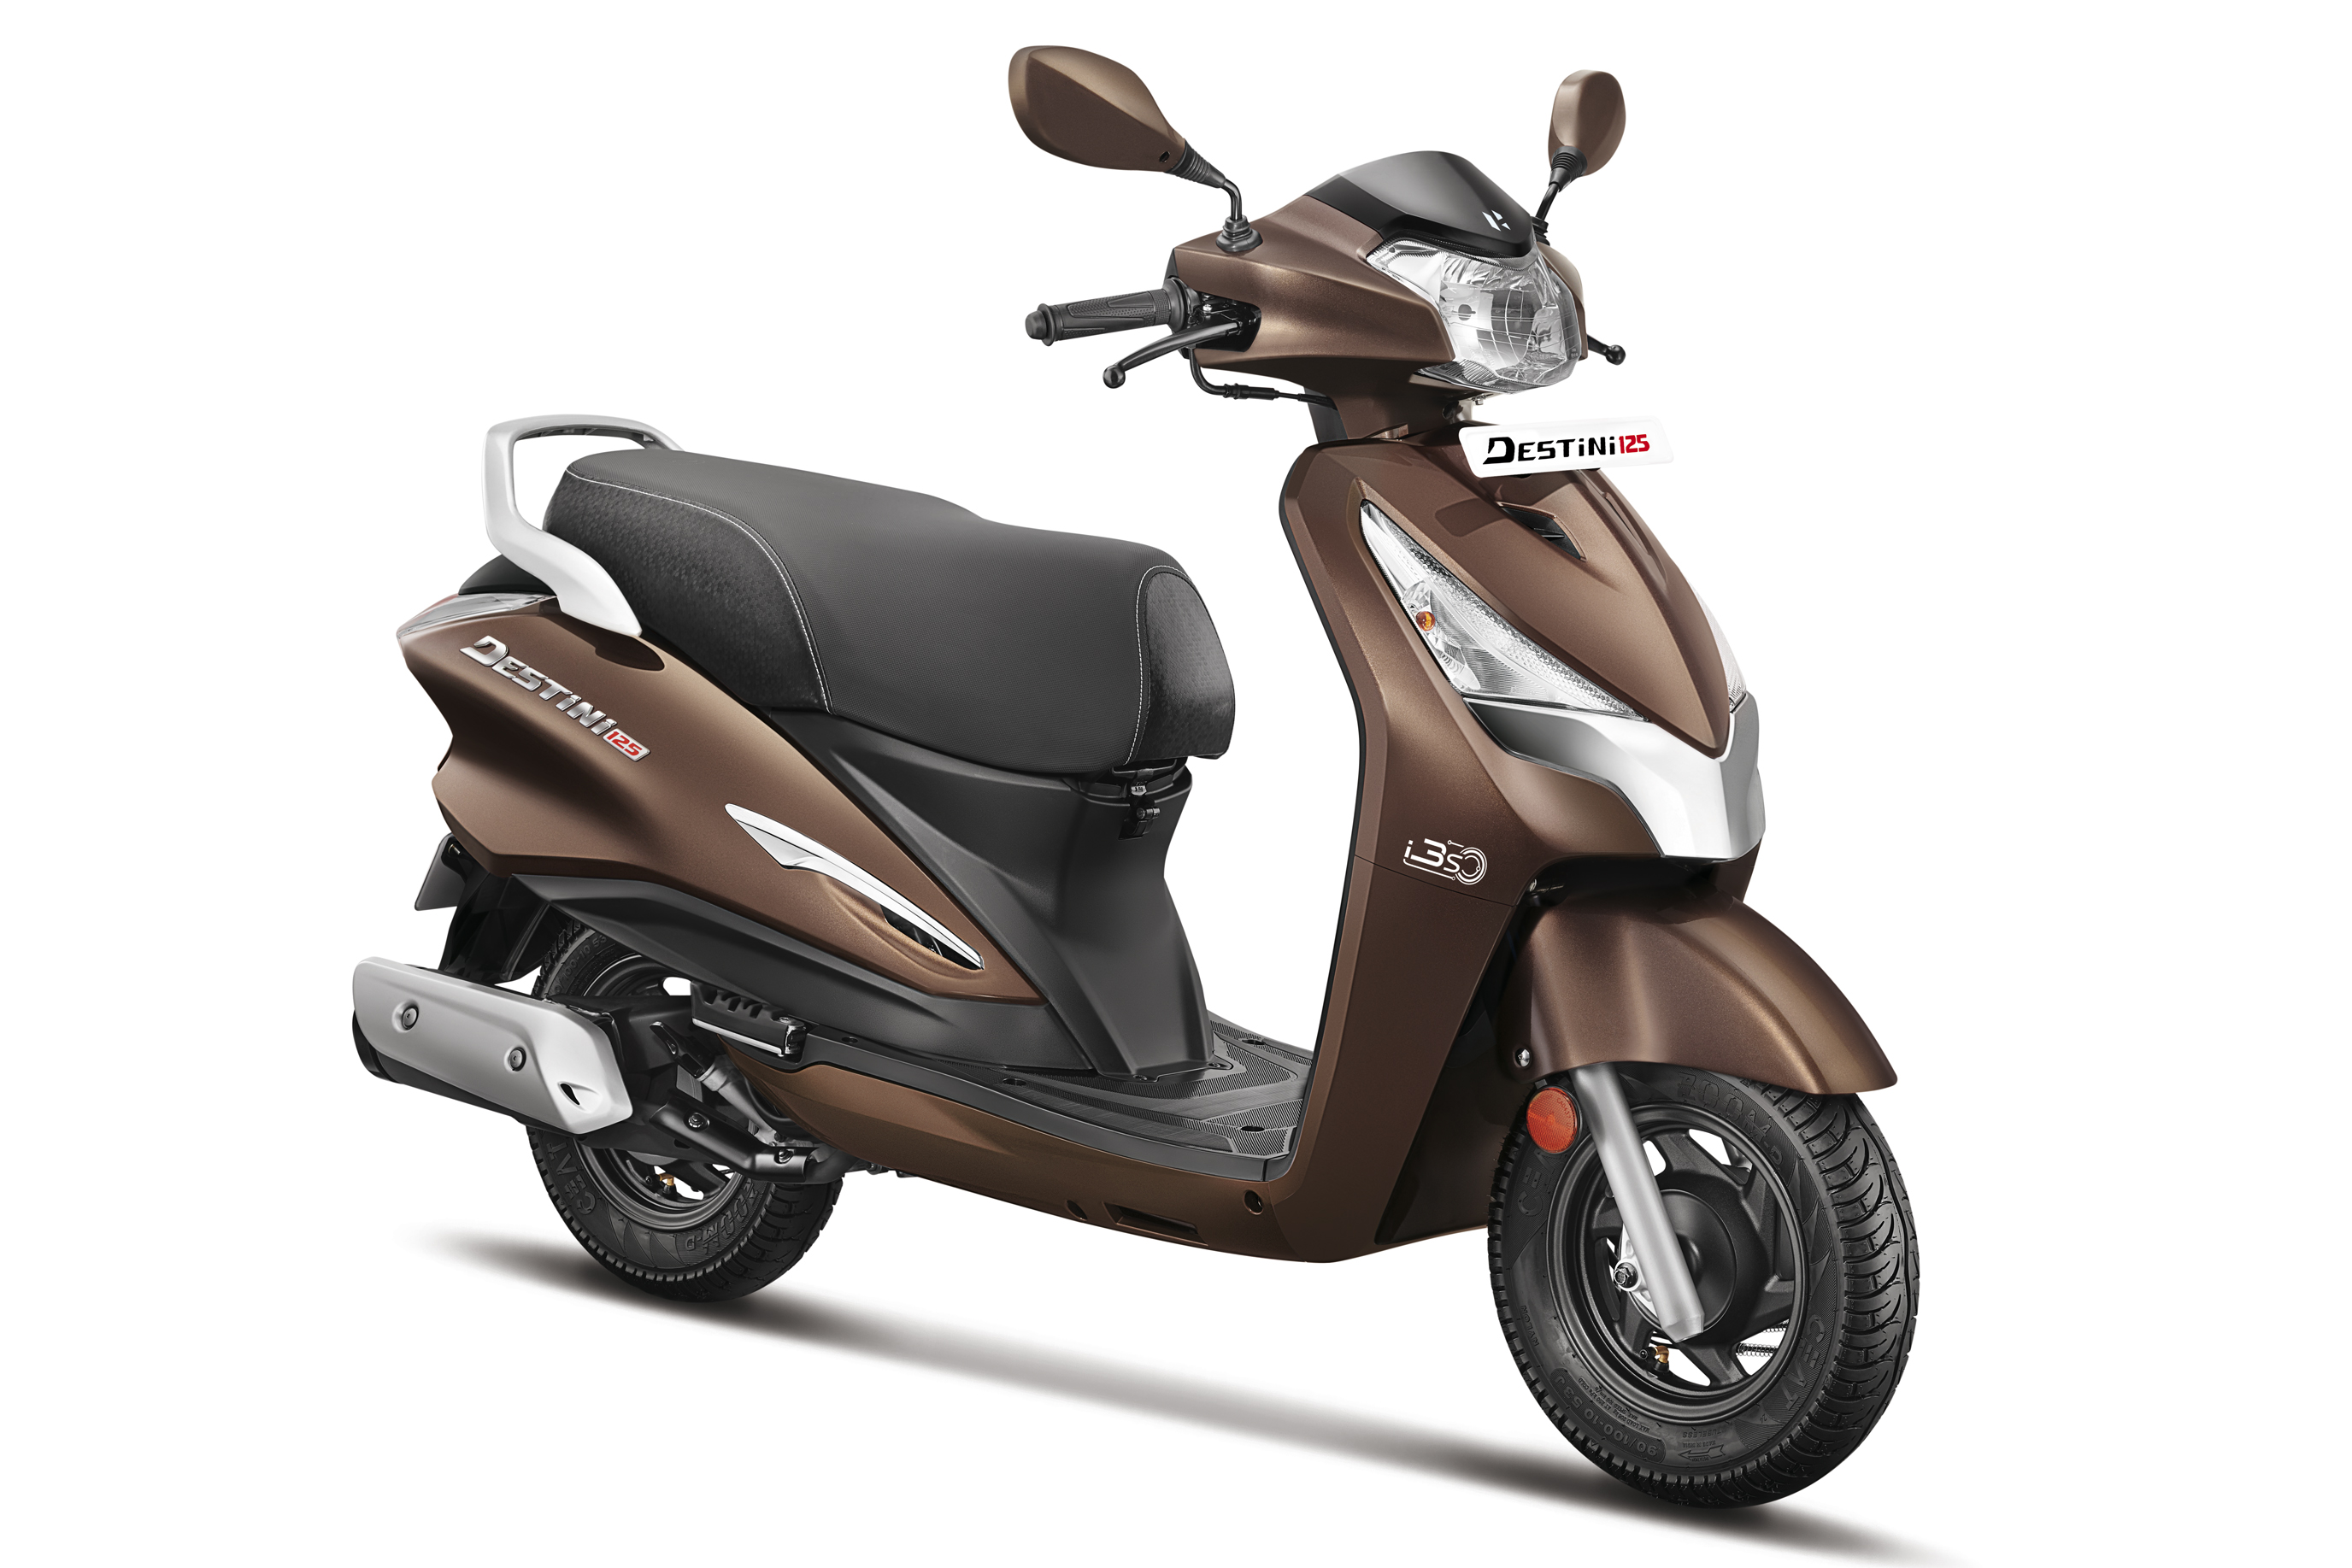 Photo of Hero Destini 125 prices revealed, rivals Honda's Activa 125